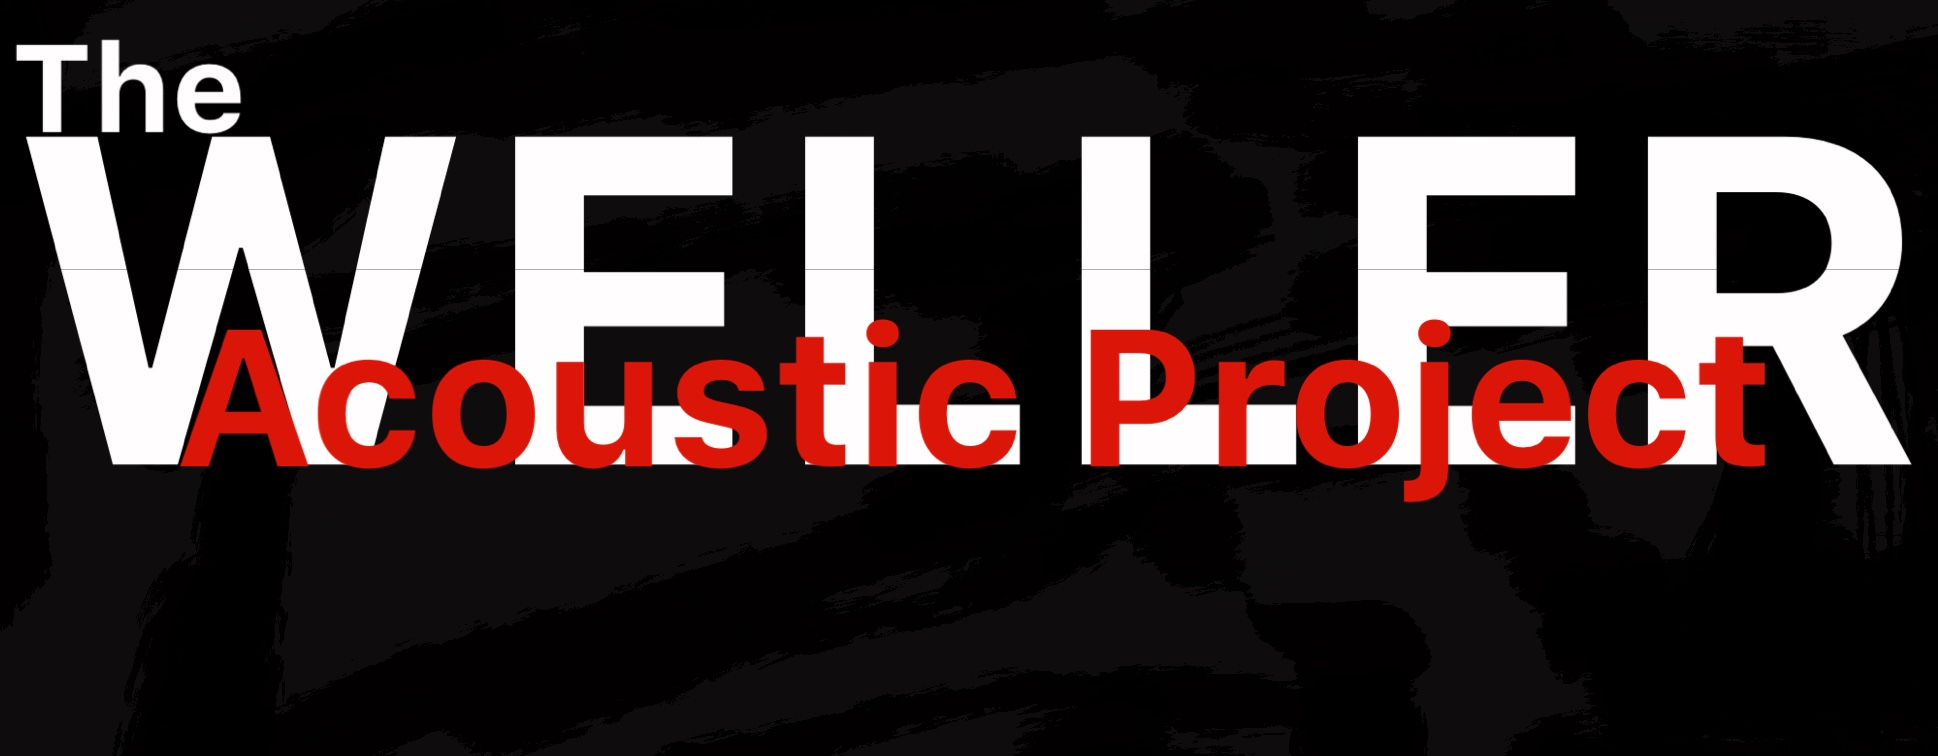 Weller Acoustic Project